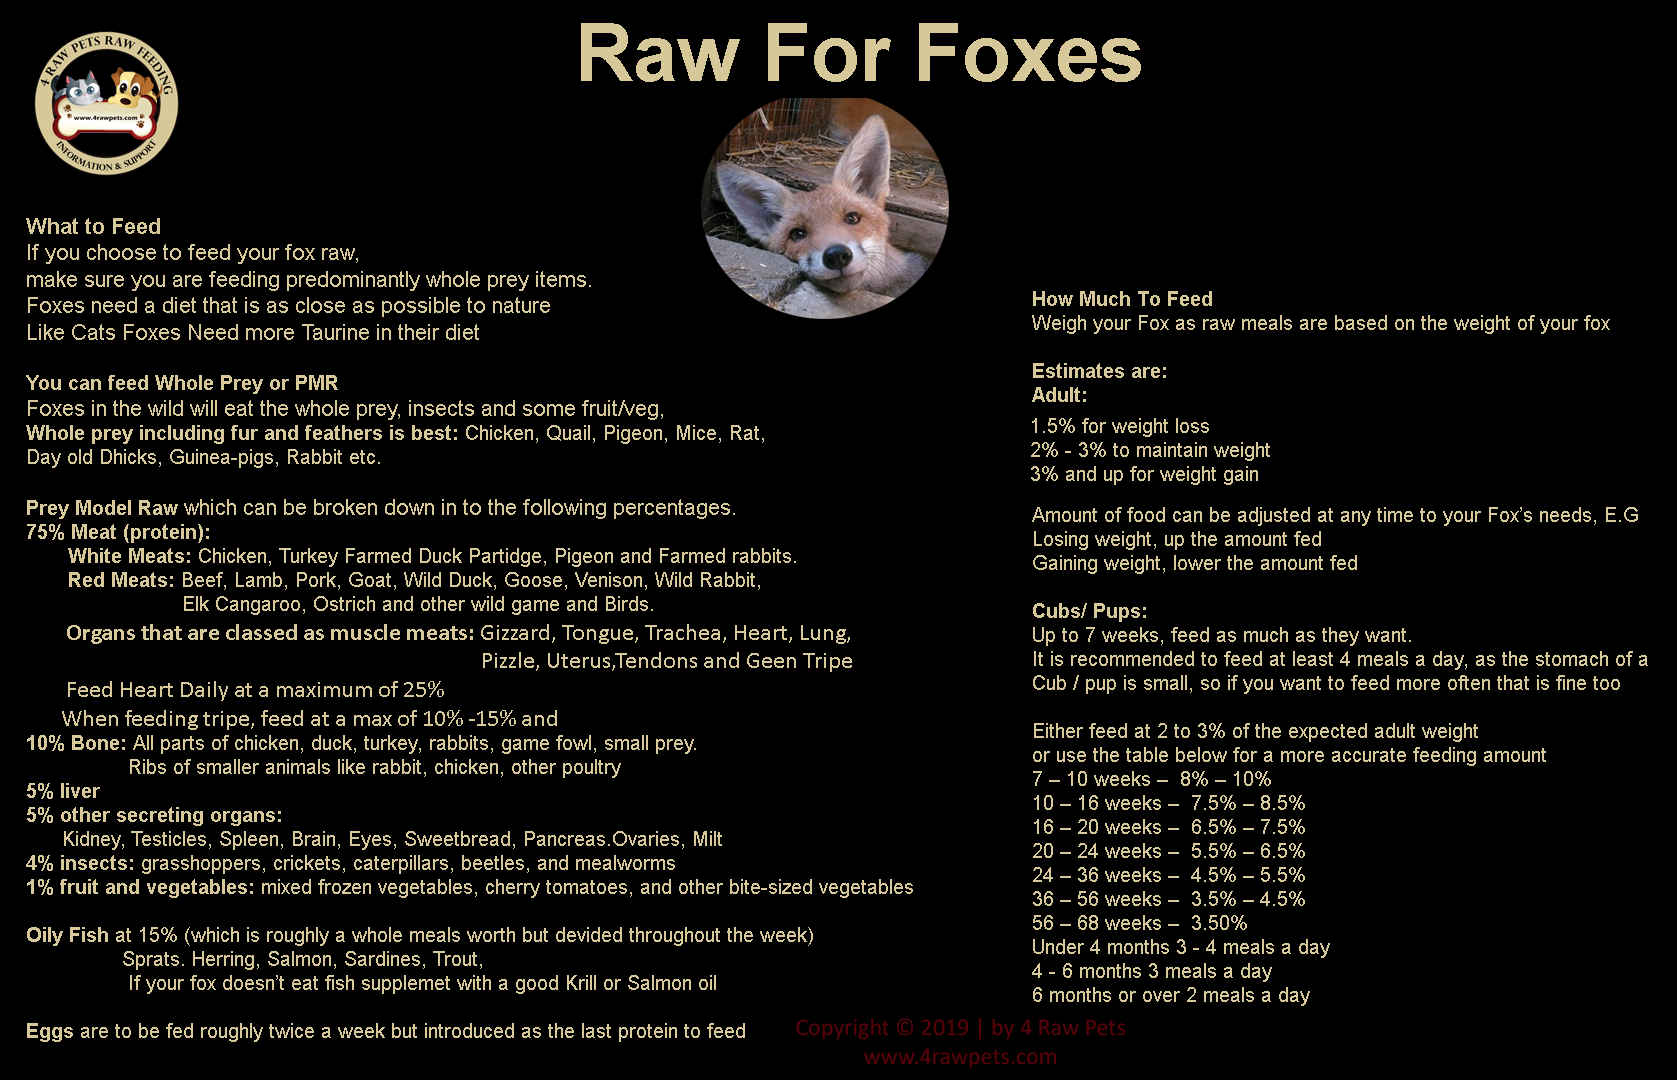 Raw for foxes